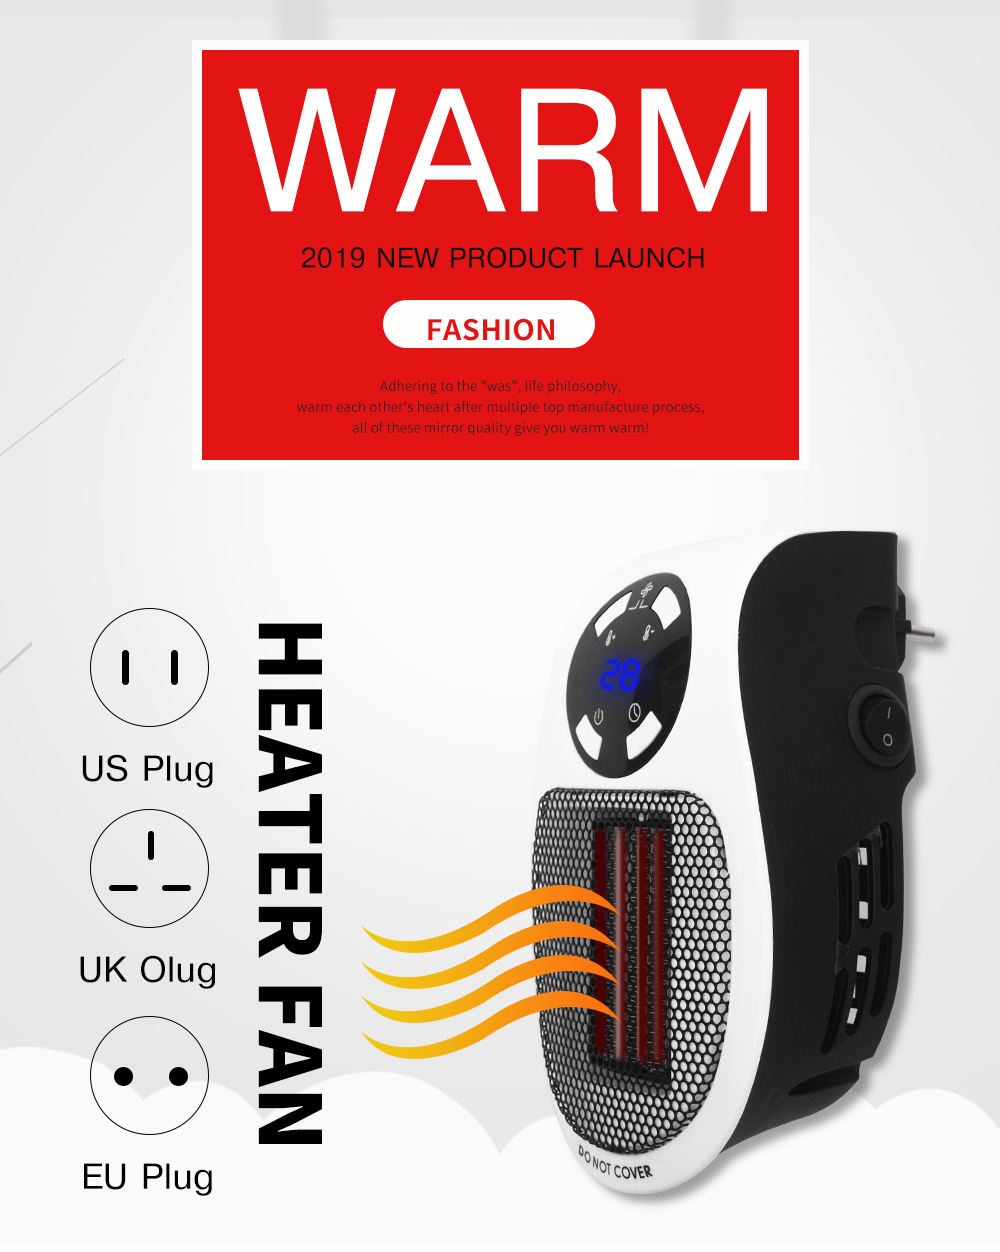 Electric Handy Heater for AD shopper